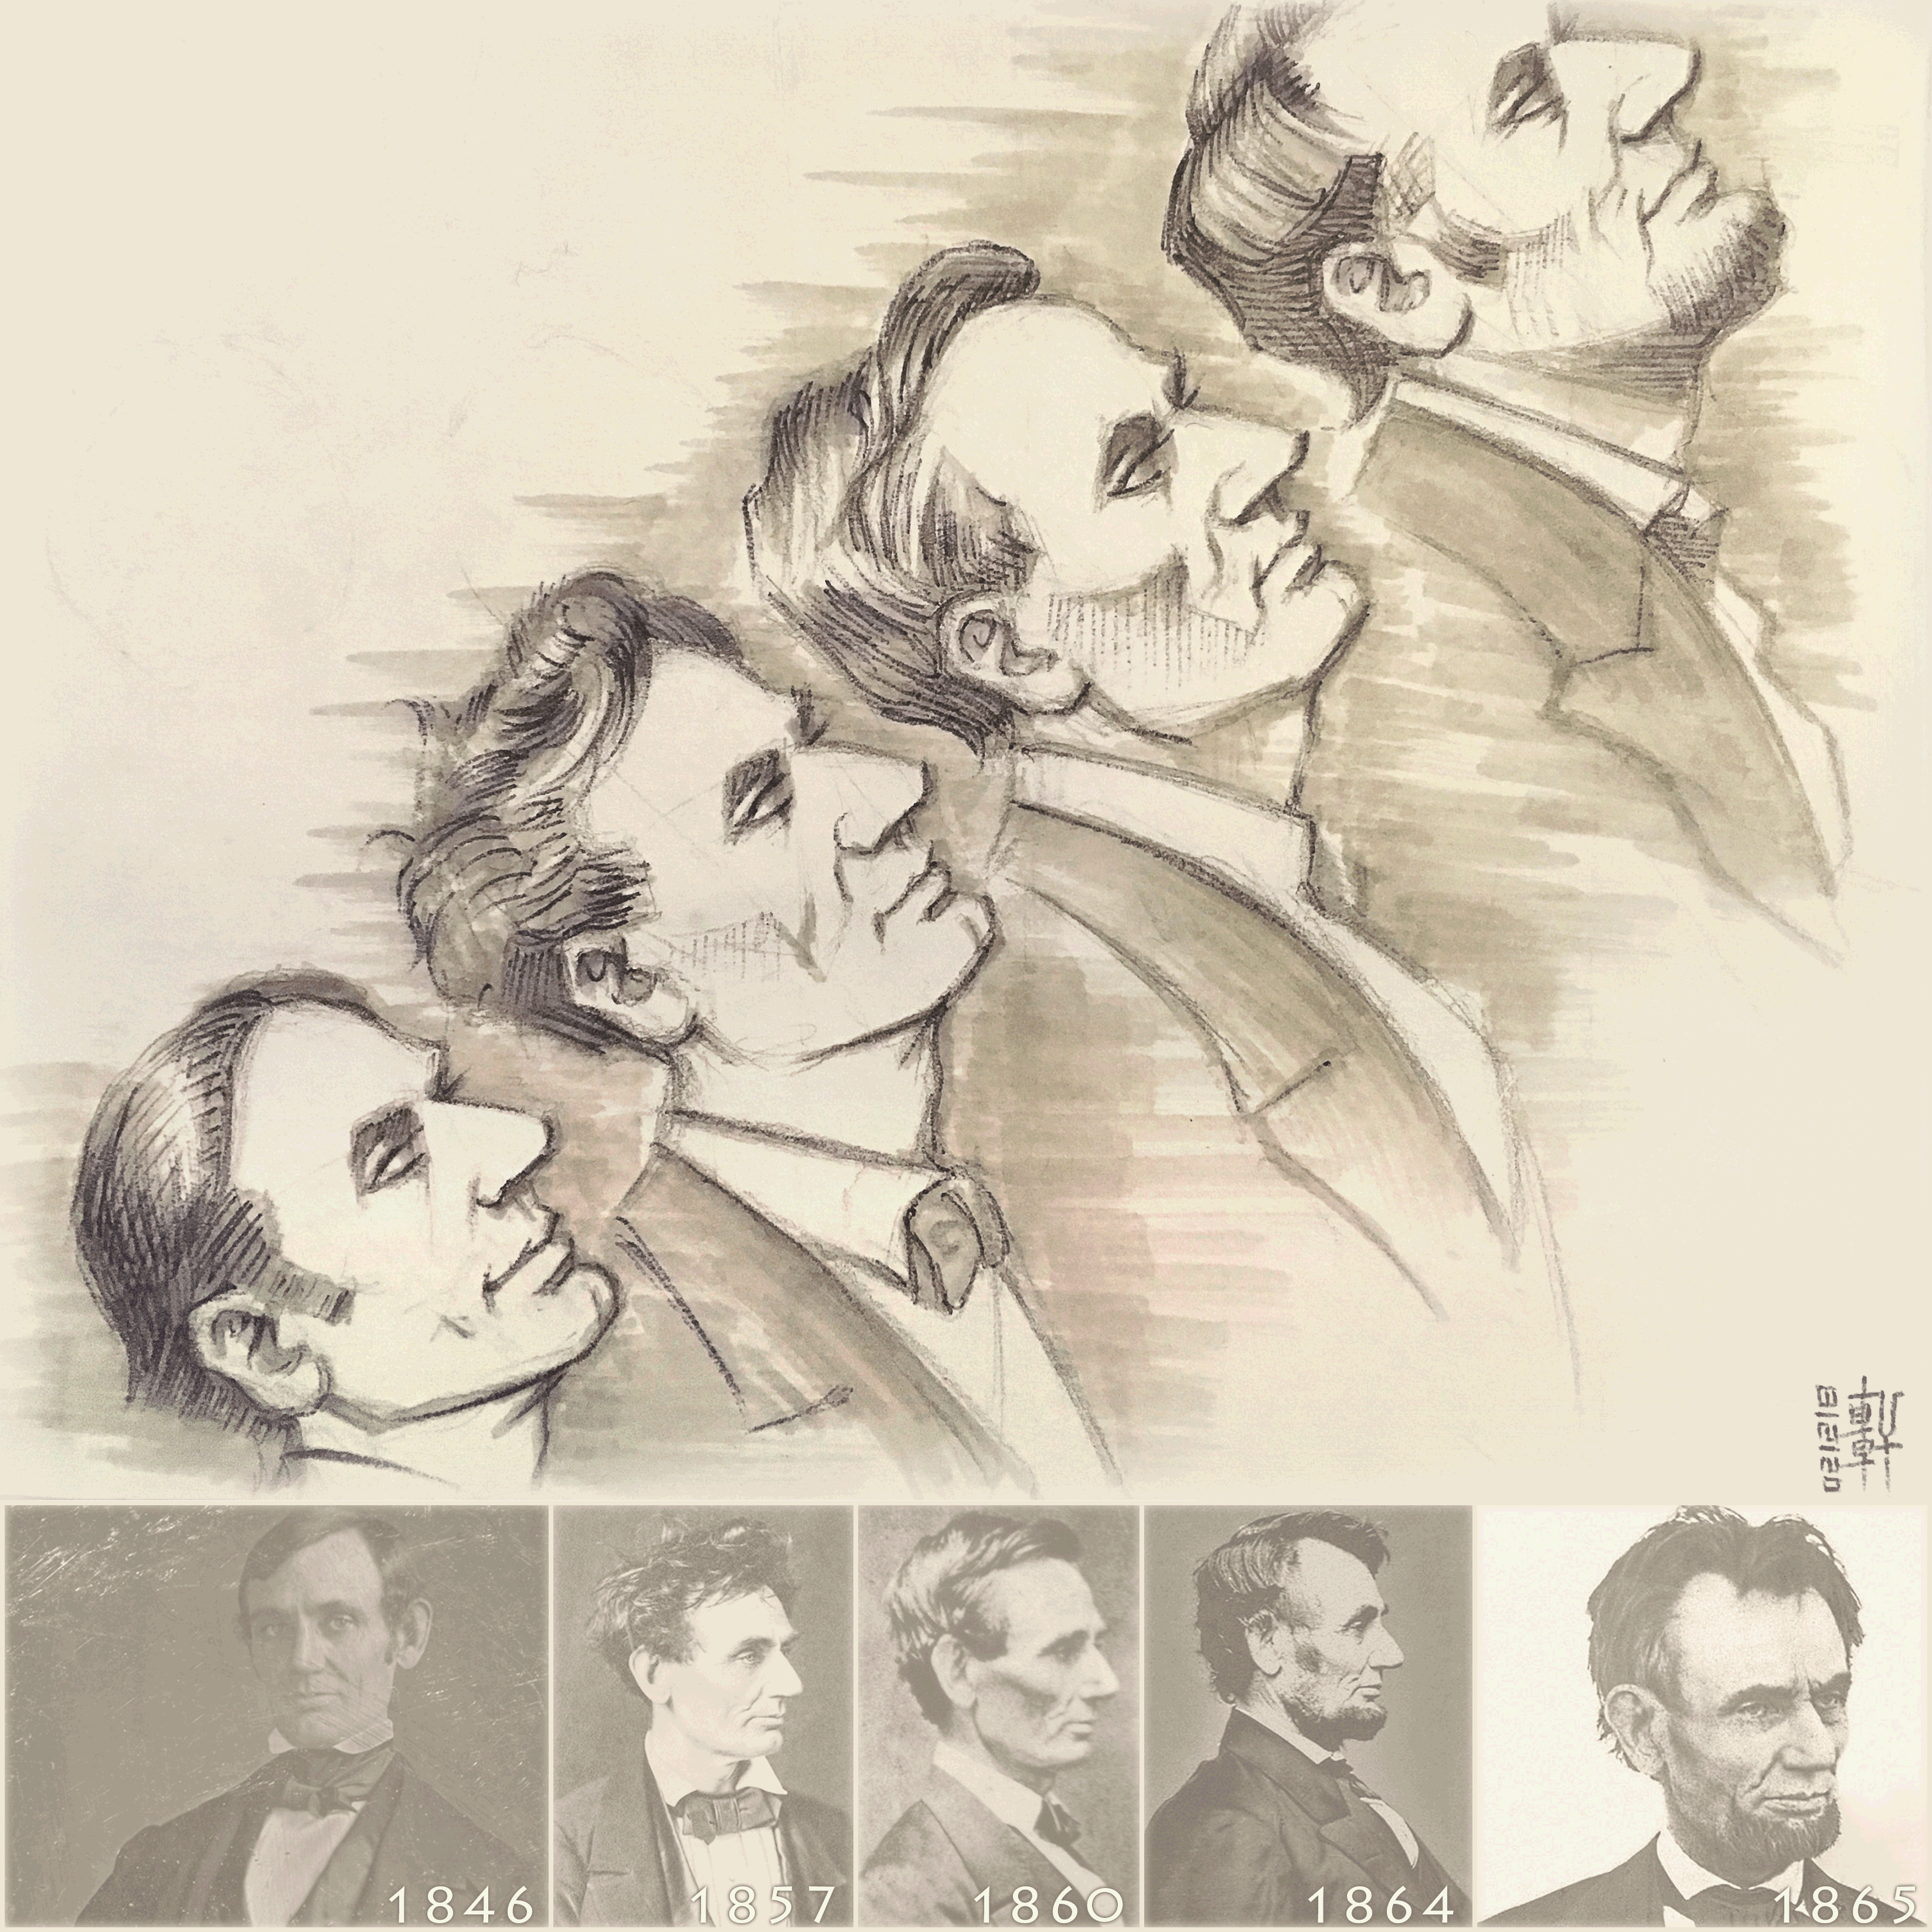 Day #15,145 - Abraham Lincoln in 4 Stages